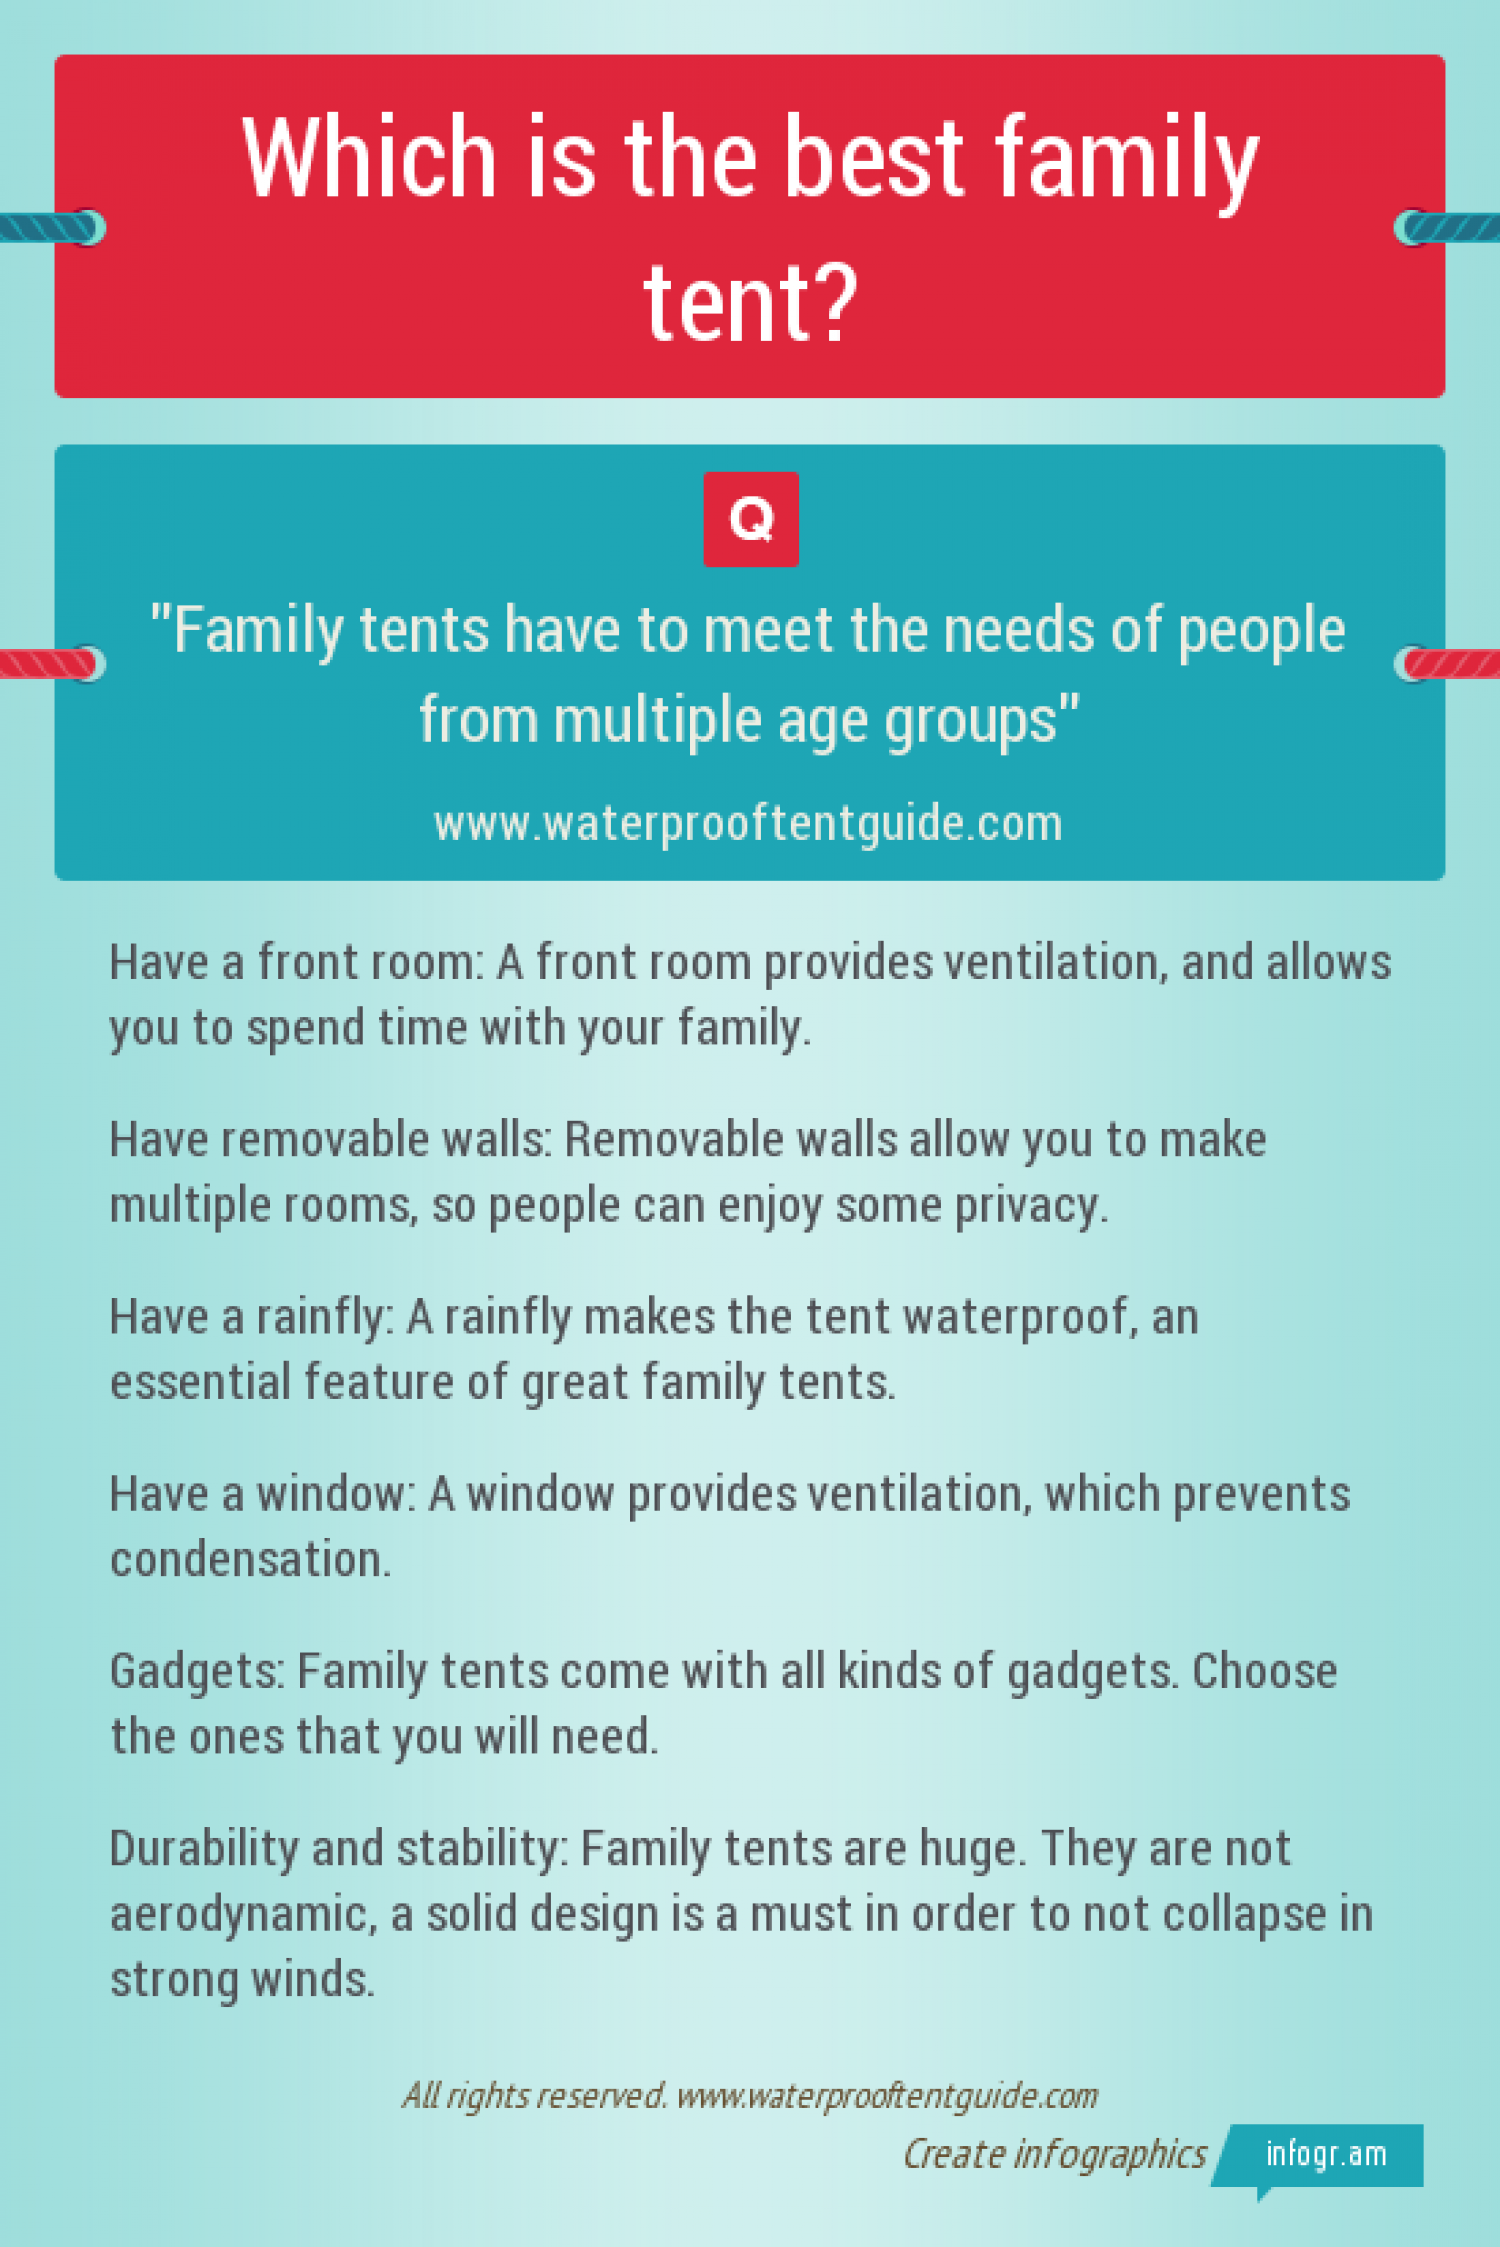 Which Is The Best Family Tent? Infographic